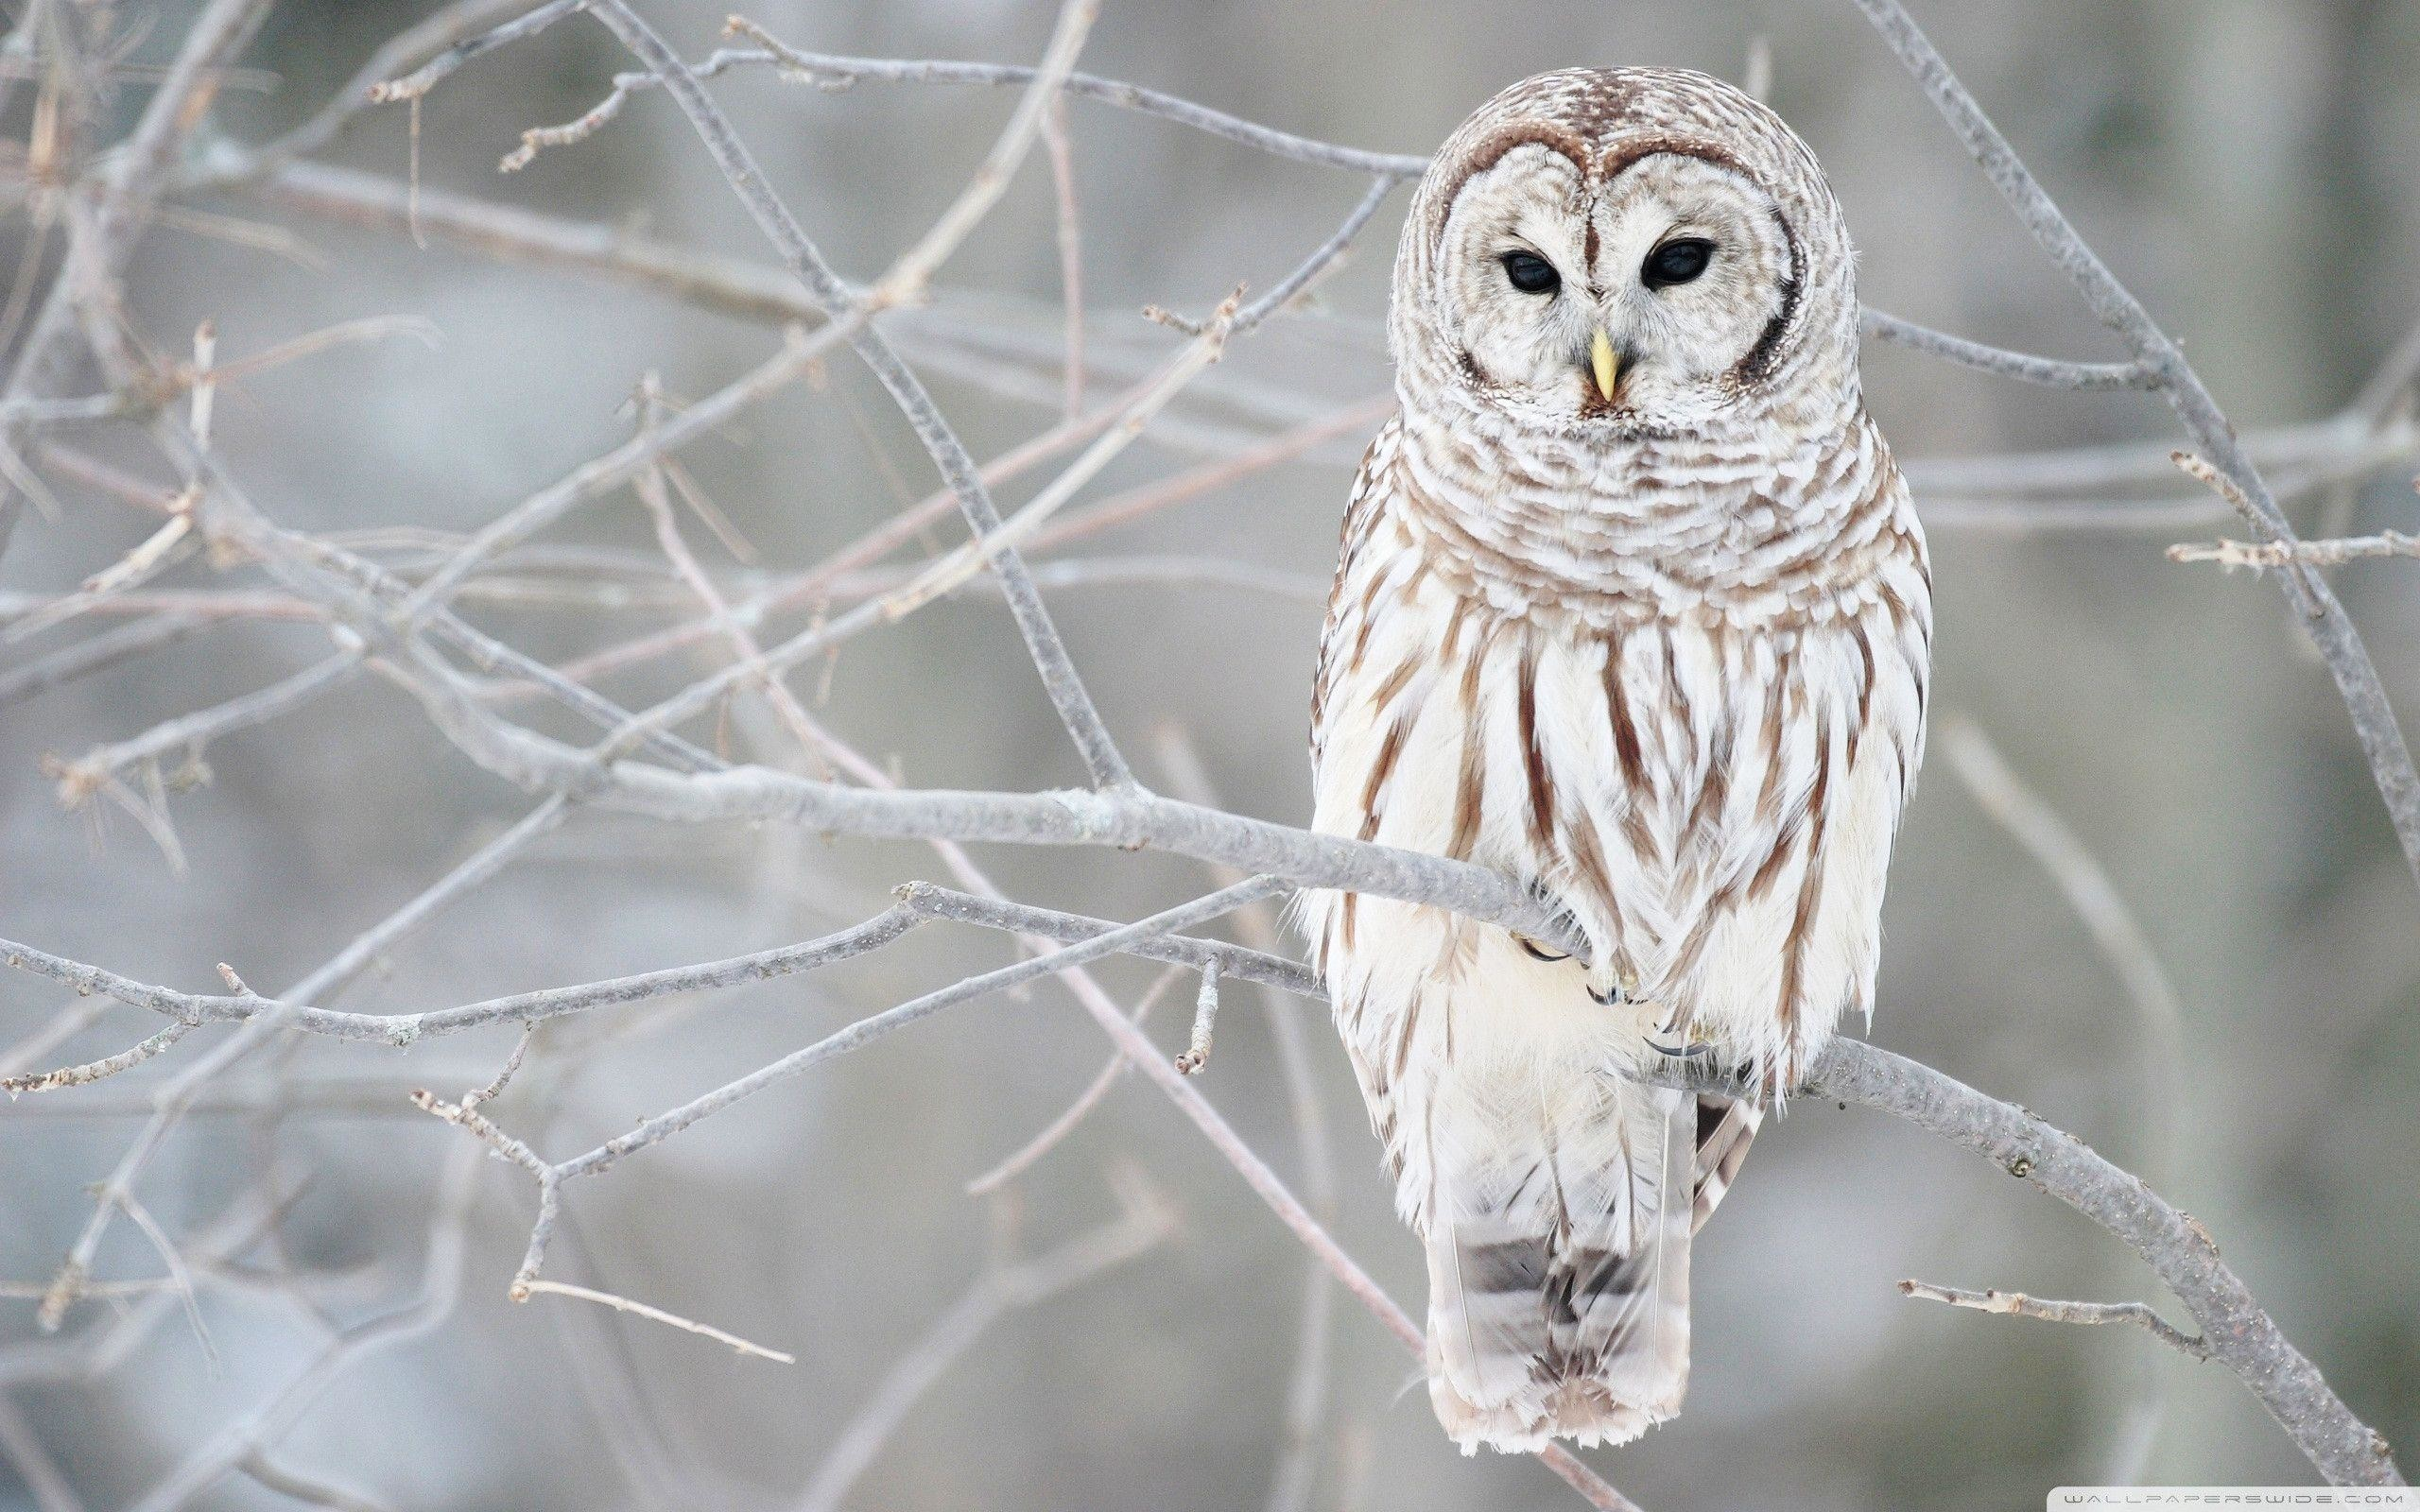 2560x1600 White Owl Hd Wallpaper Â« Animals & Birds Wallpapers Â« Free .